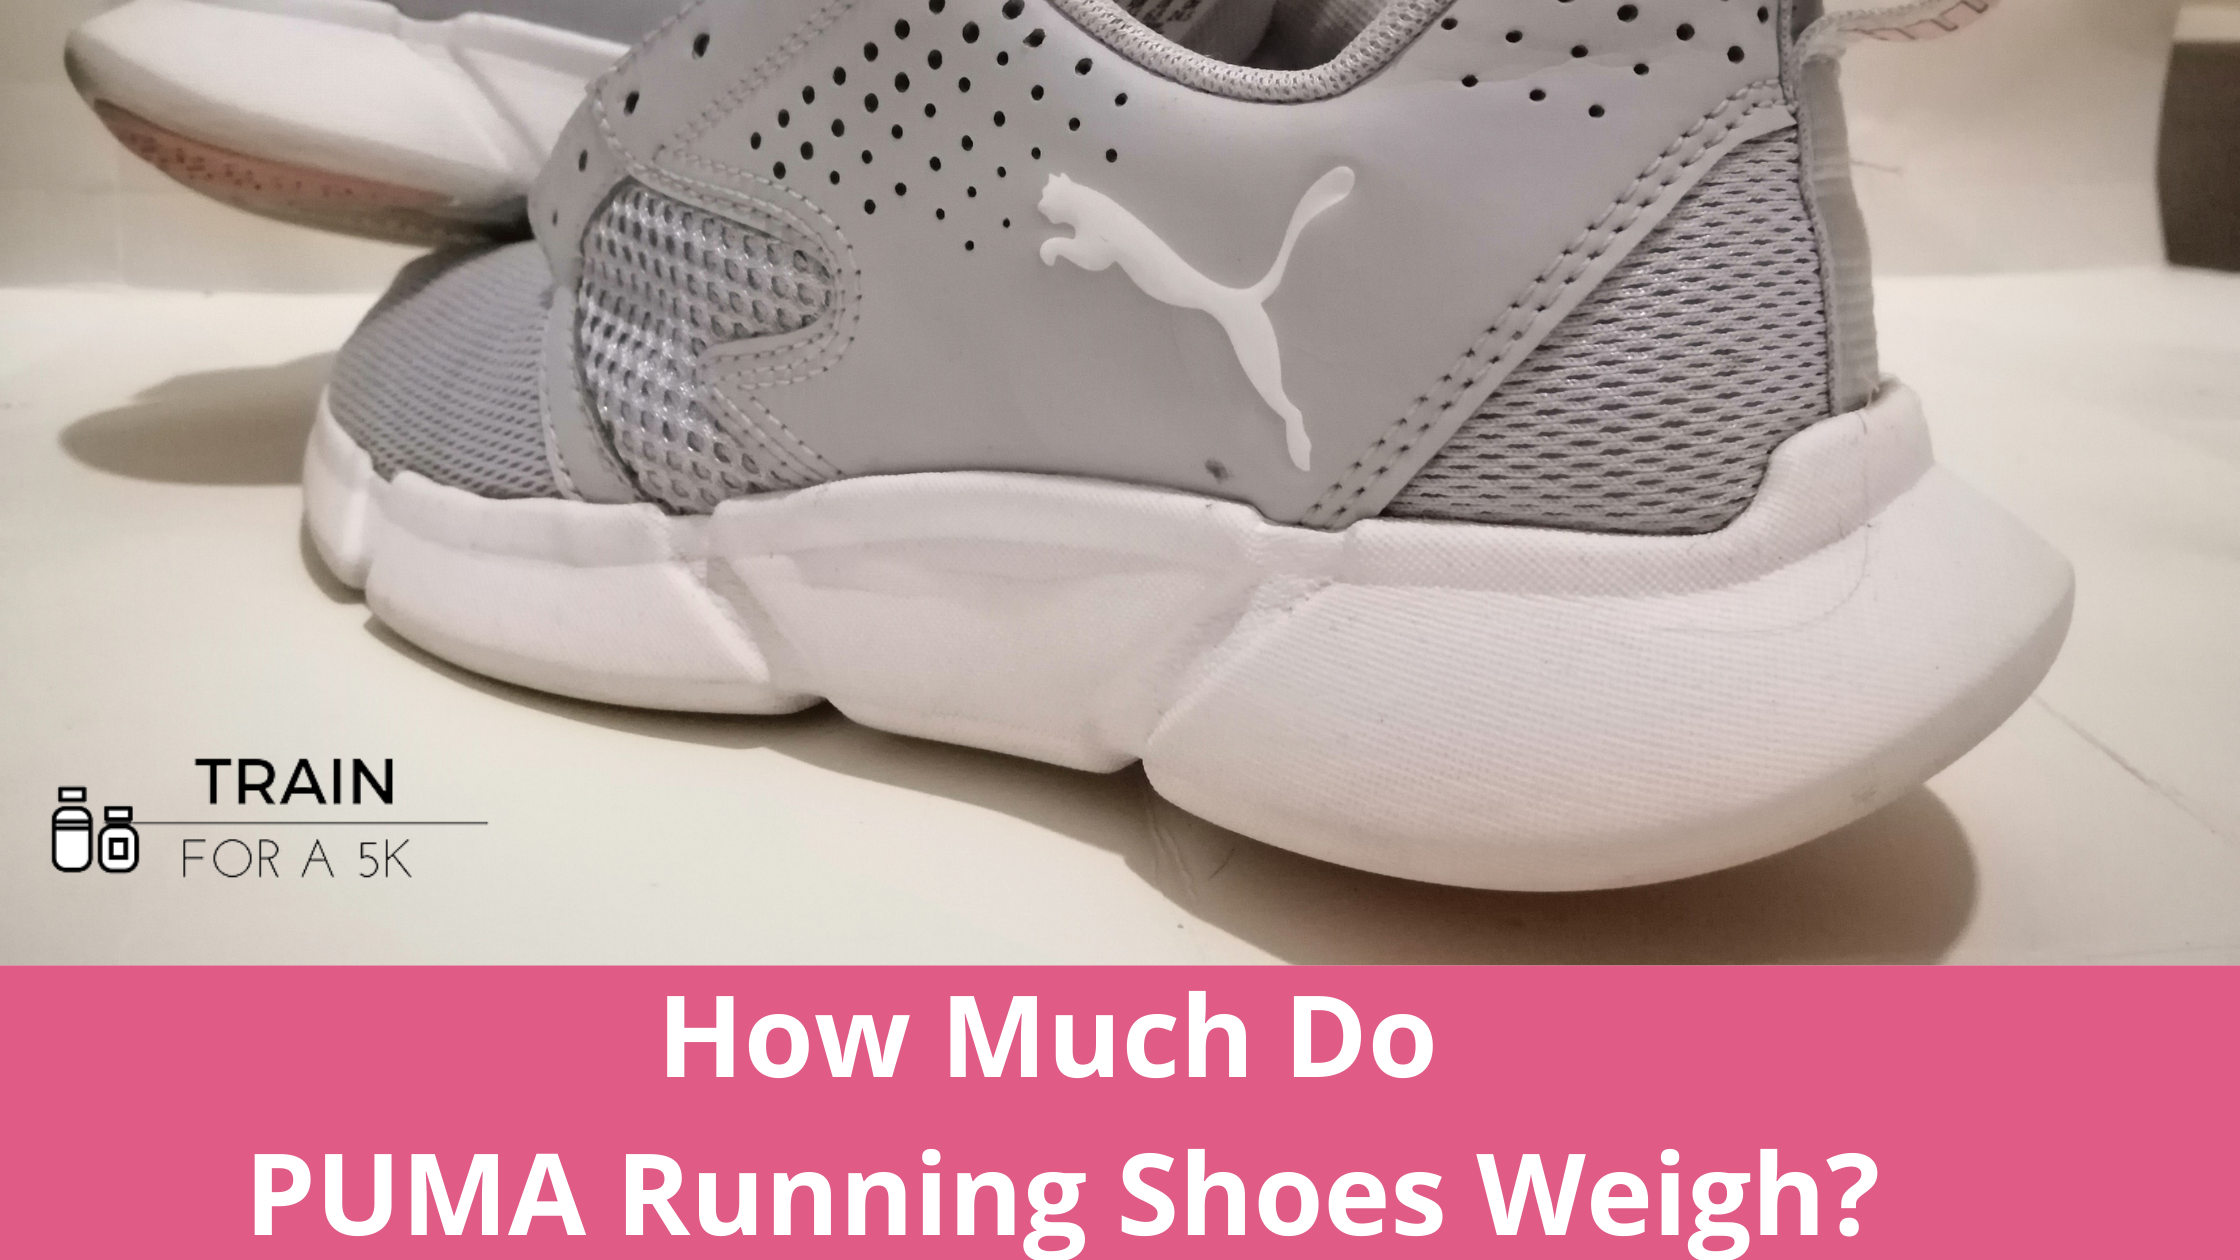 The average weight of a Puma running shoe is 8.96 ounces in men's and 7.4 ounces in women's. The heaviest Puma running shoe is the Magnify Nitro and the lightest is the Liberate NITRO.